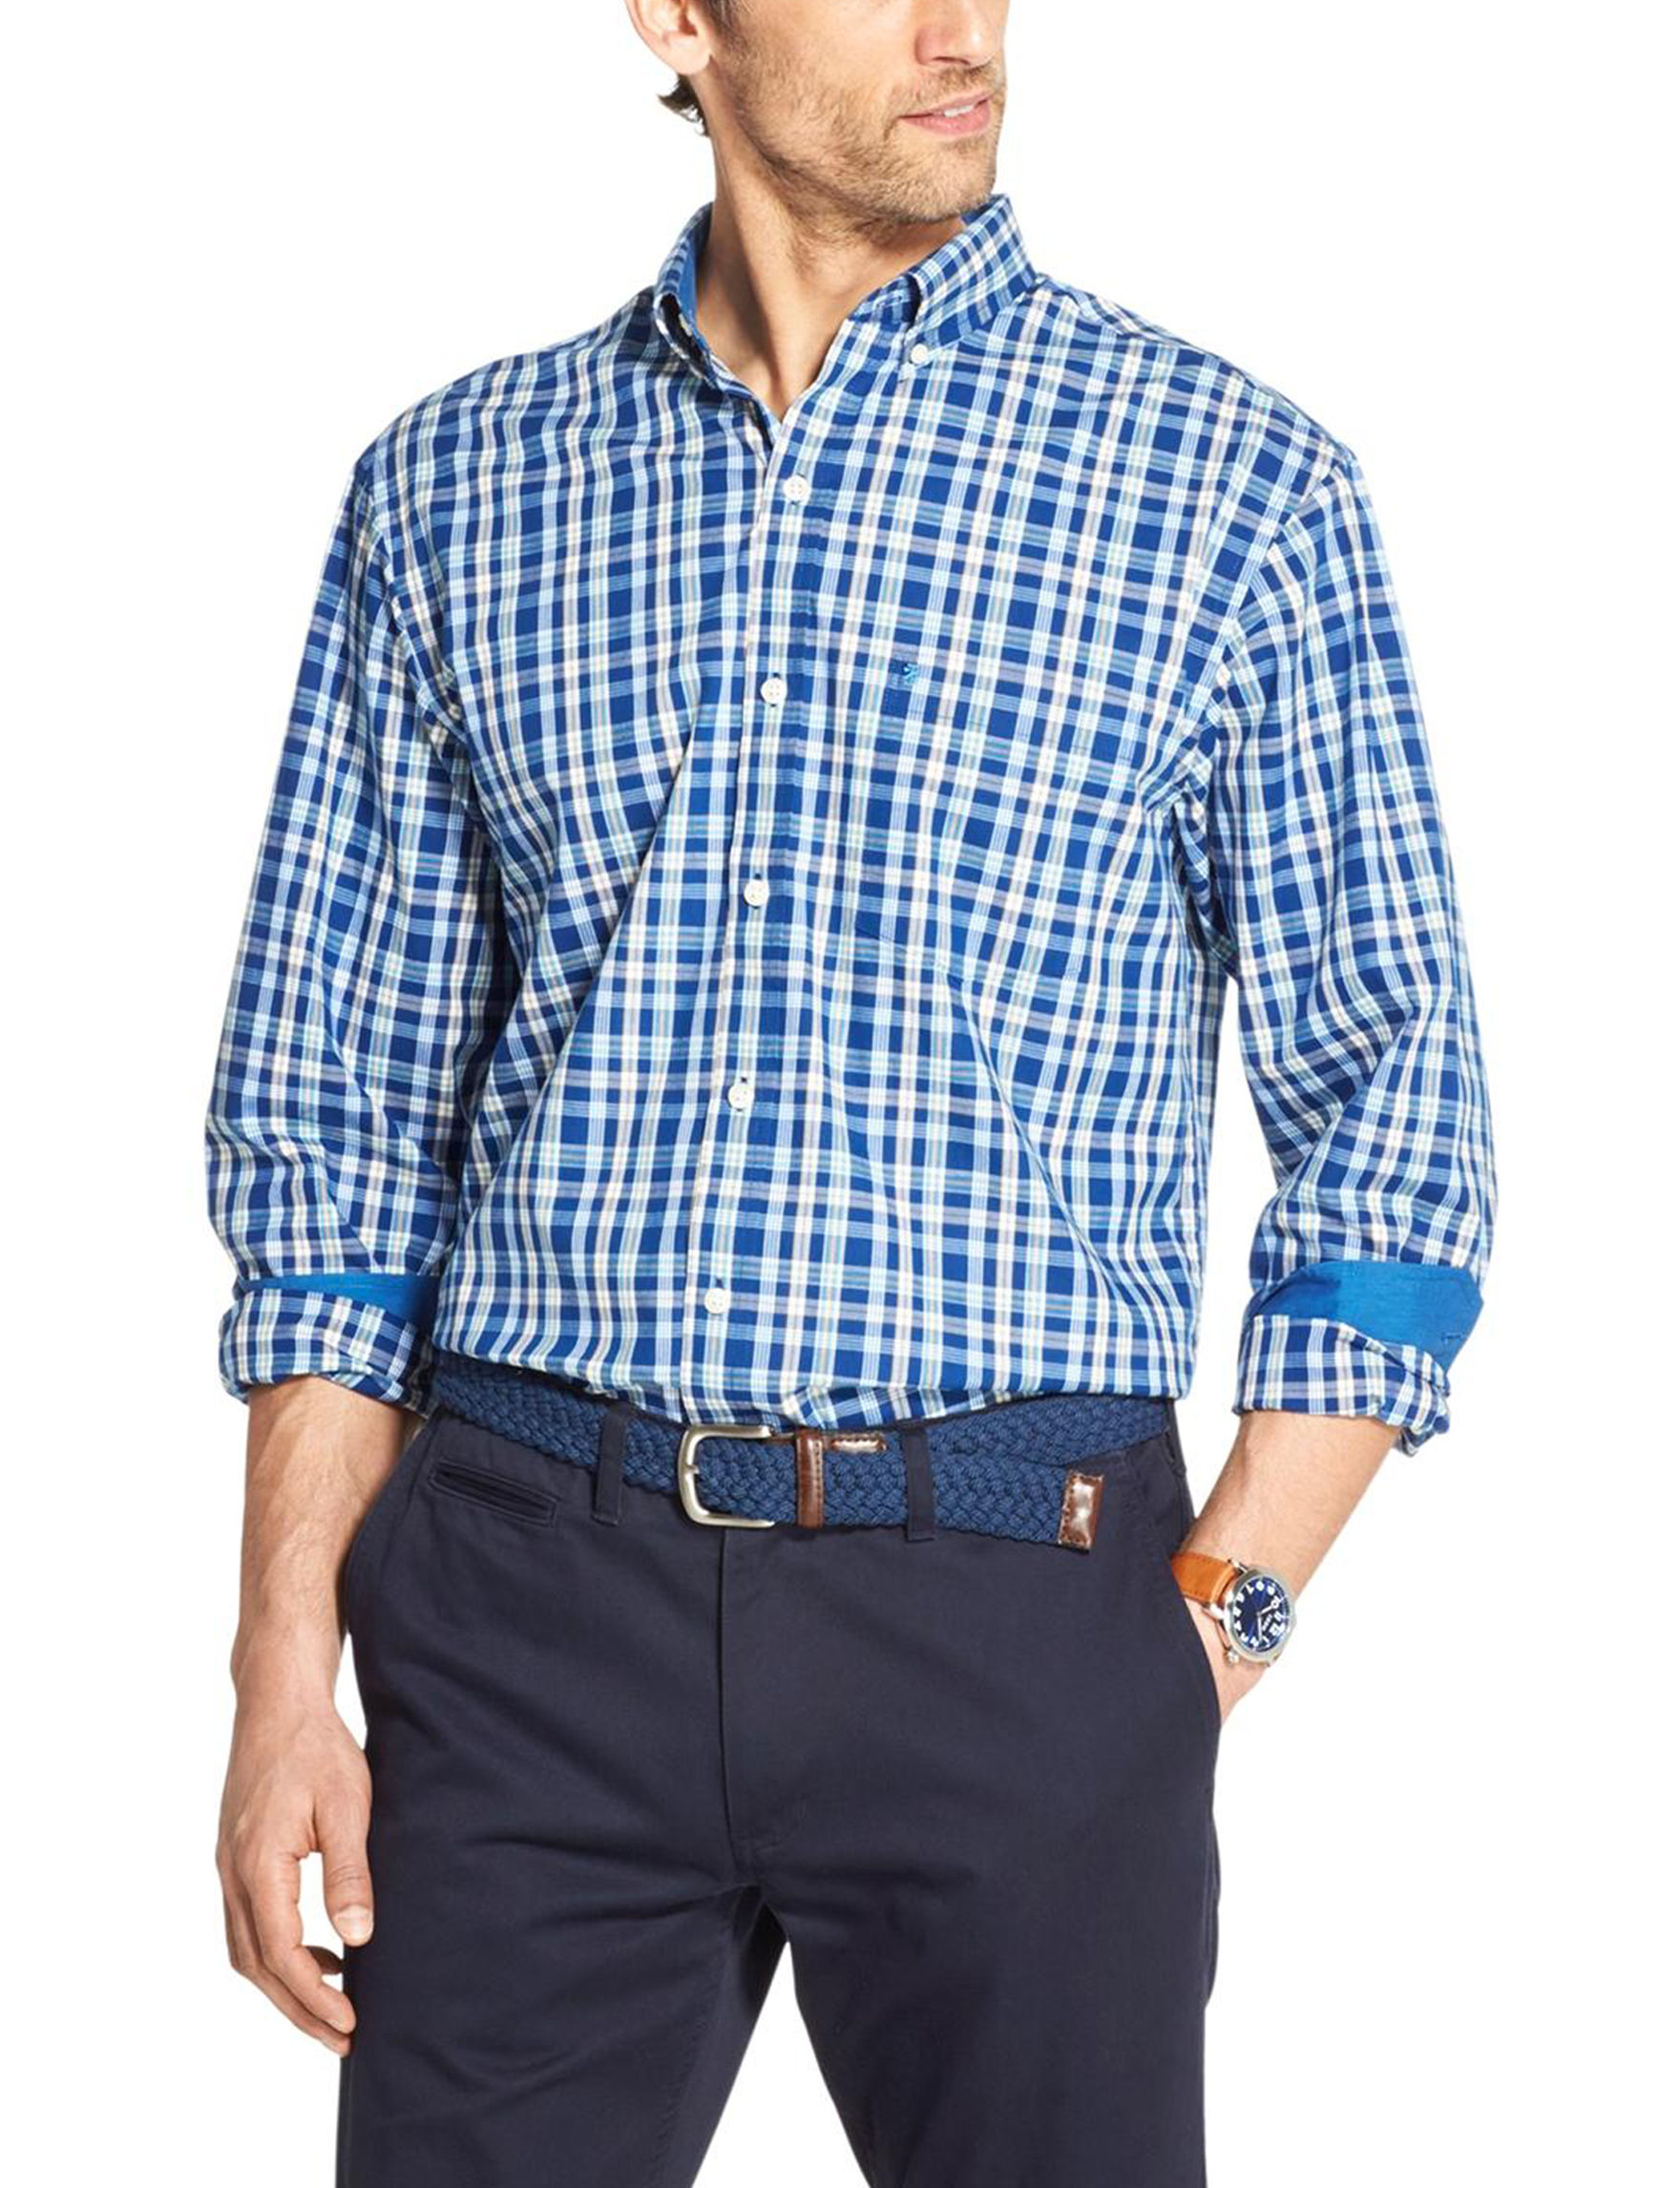 Izod Blue / White Casual Button Down Shirts